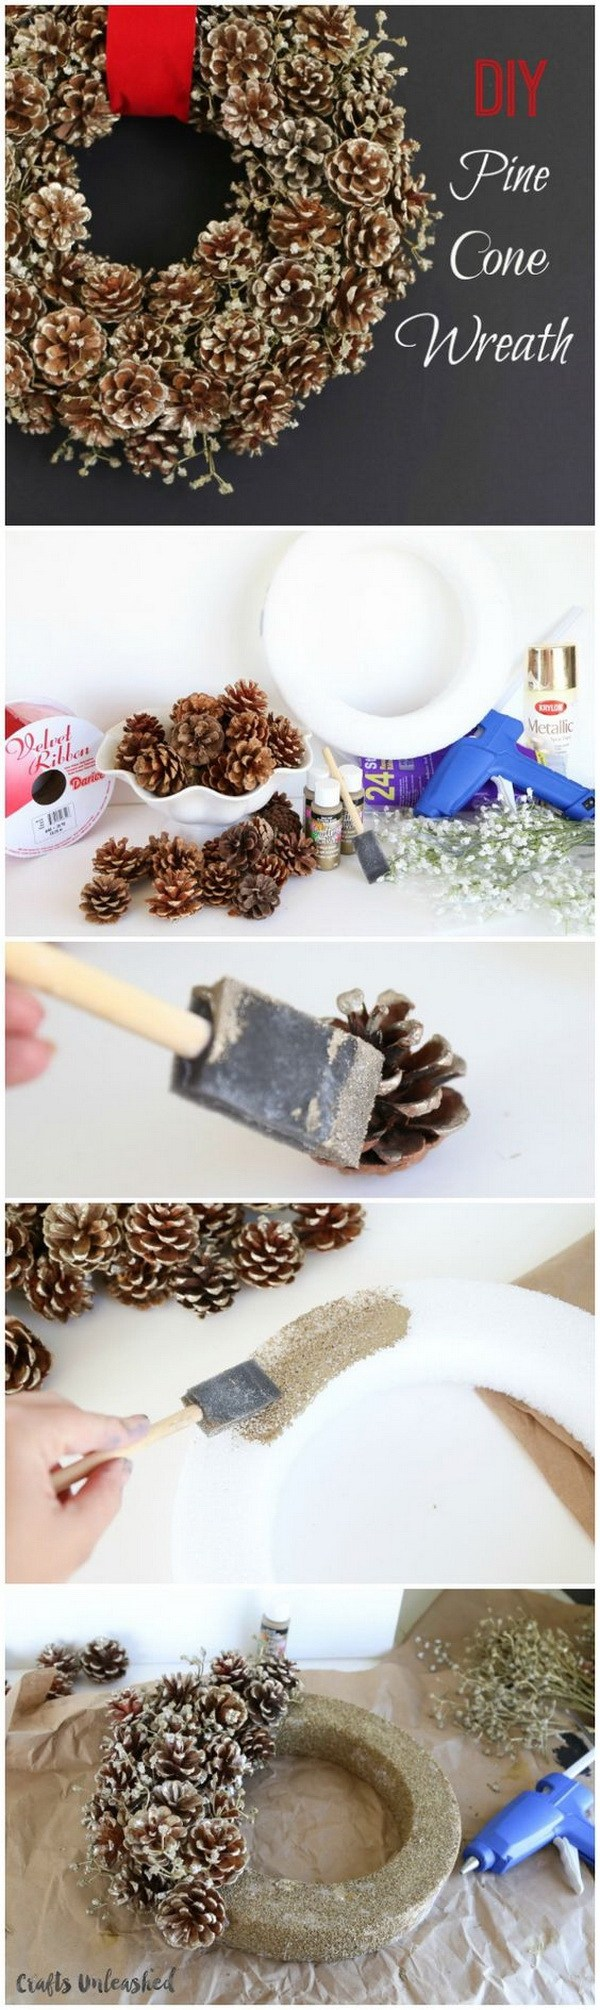 Winter Pine Cone Wreath DIY. Create a simple pine cone wreath for your fall and winter holiday decorating. Love the rustic warm it